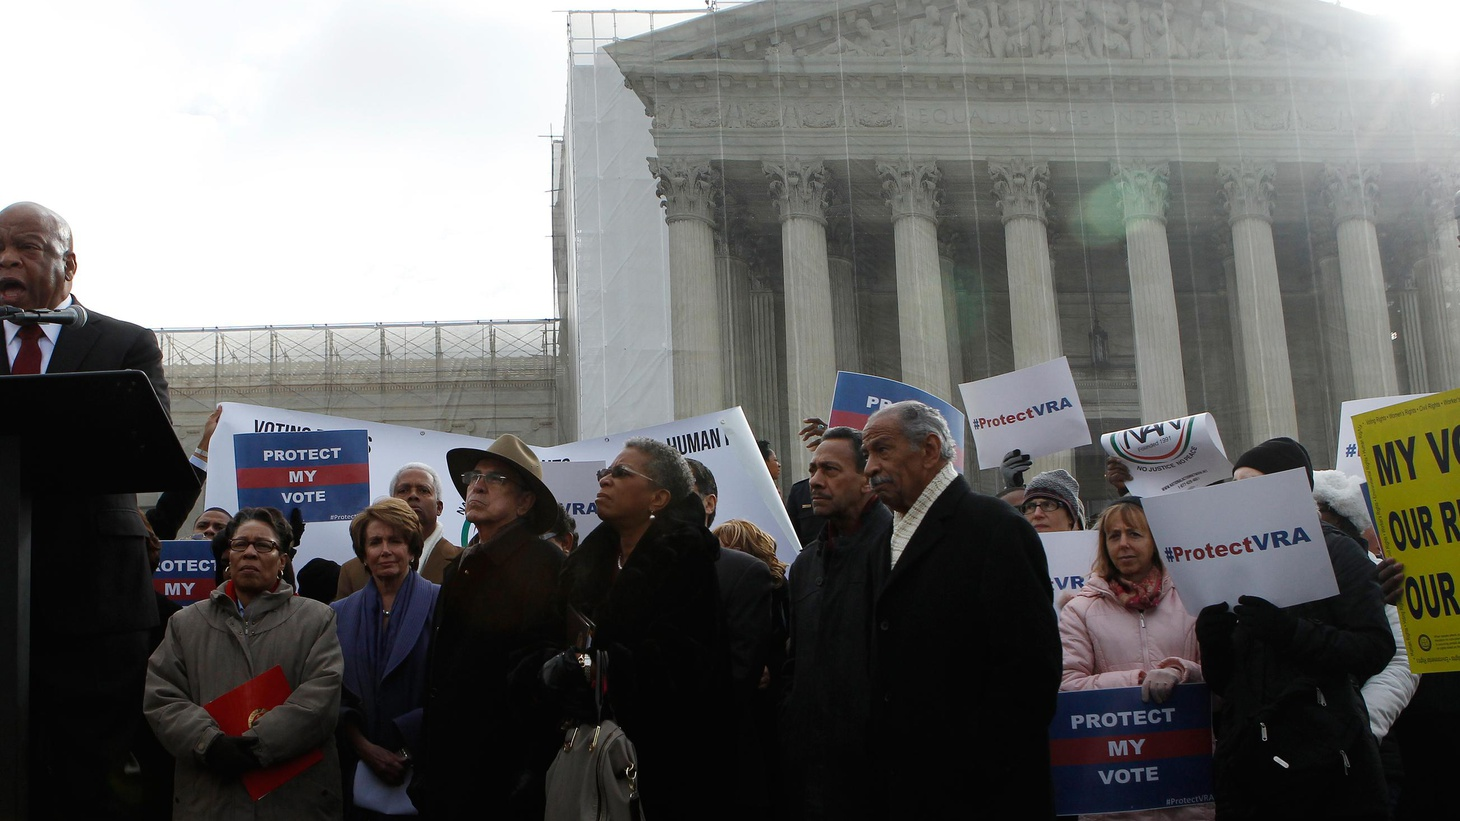 As predicted, conservatives on the US Supreme Court today took aim at Section 5 of the Voting Rights Act of 1965. We hear the arguments and what the justices had to say.